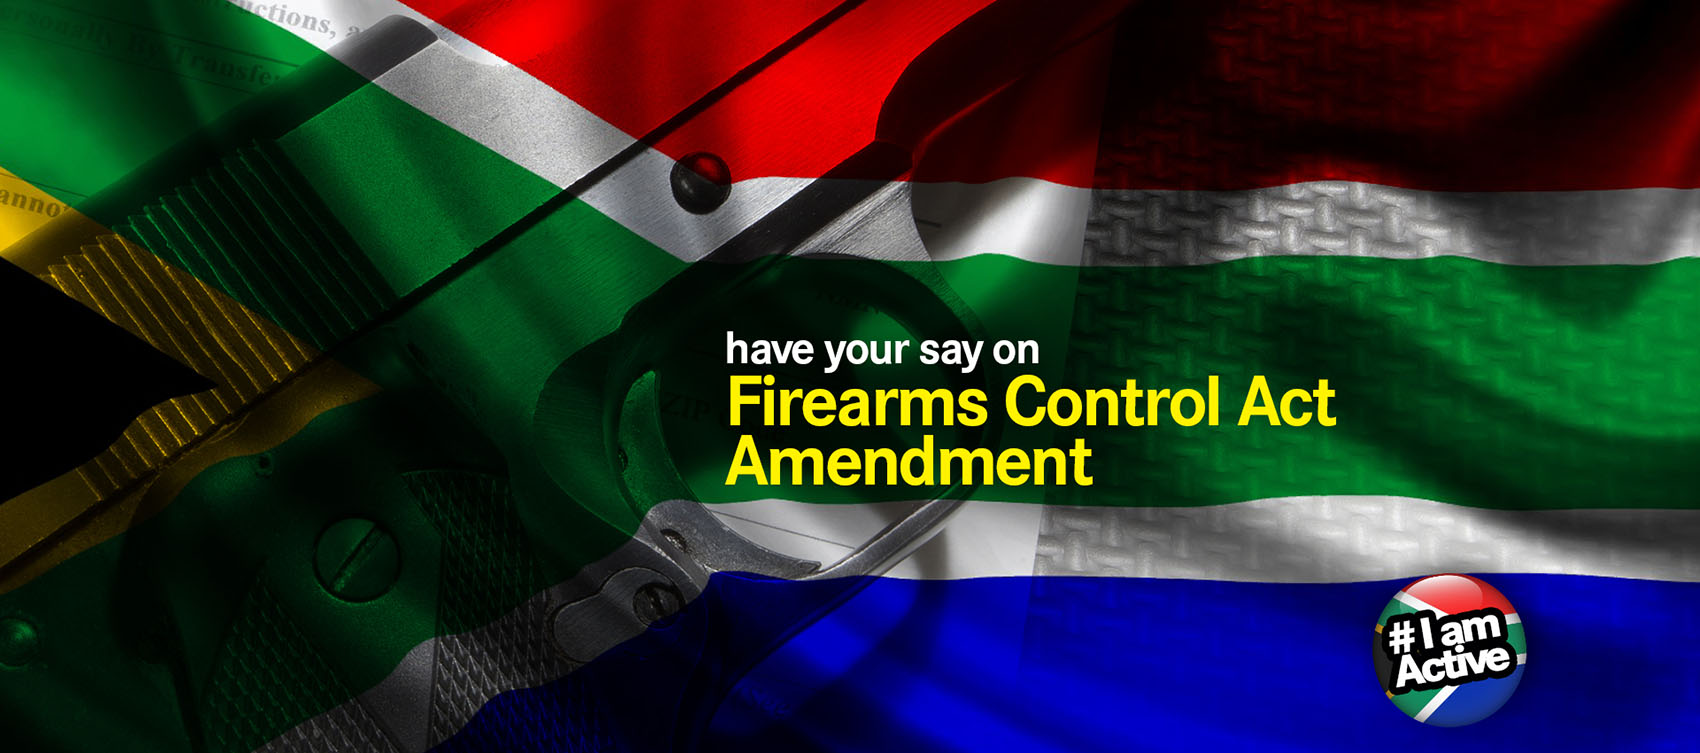 help shape the Firearms Control Act Firearms control act